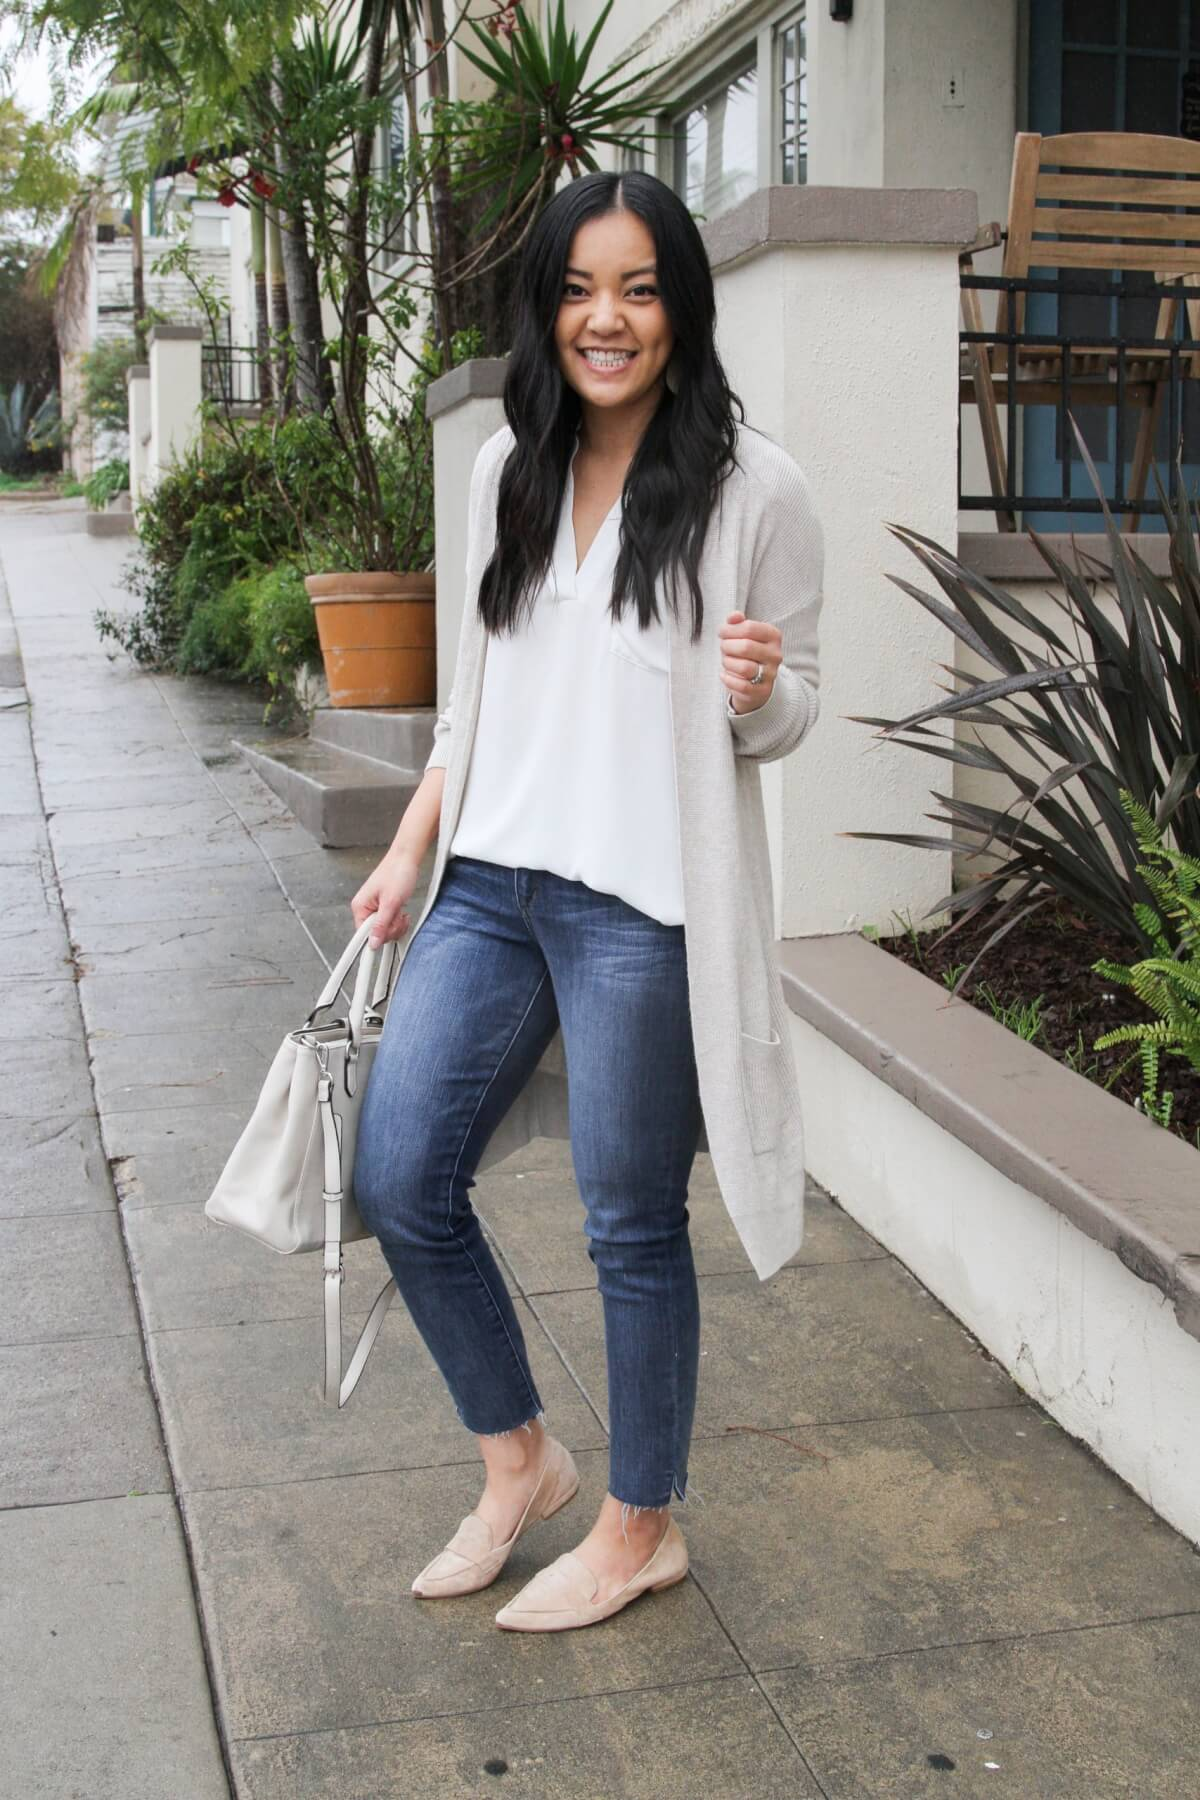 comfy elevated casual outfit for spring: white tunic, light cardigan, jeans, nude flats, white bag, side view